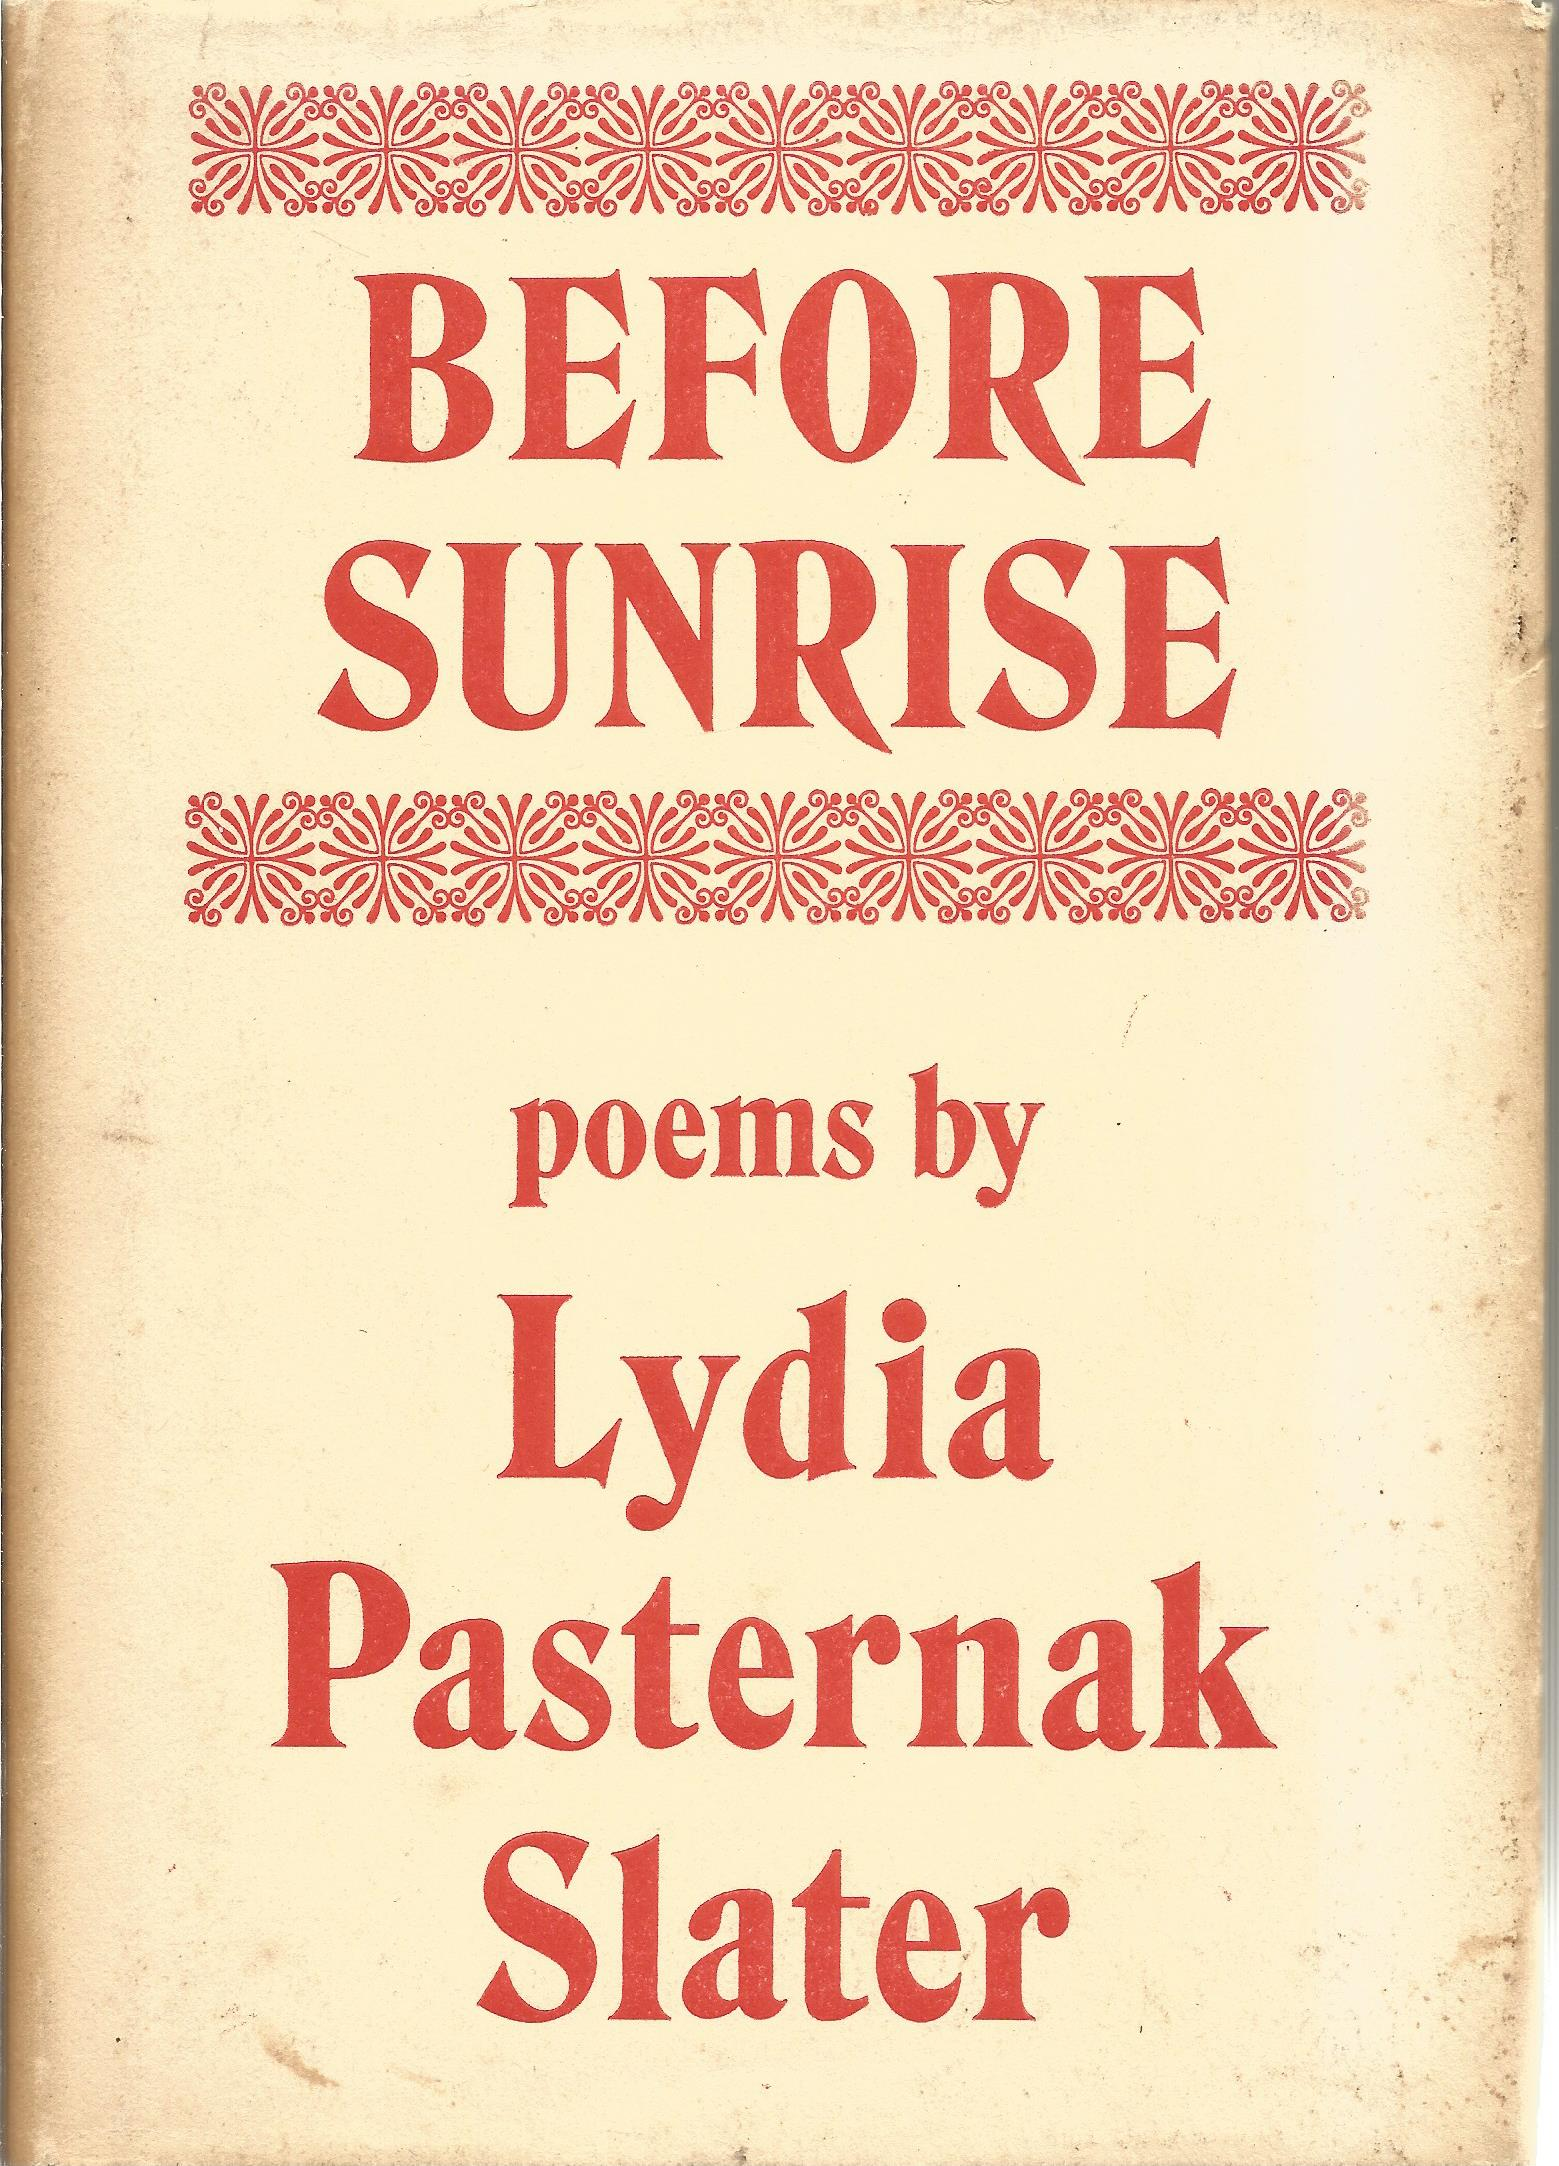 Lydia Pasternak Slater Hardback Book Before Sunrise signed by the Author on the First Page and dated